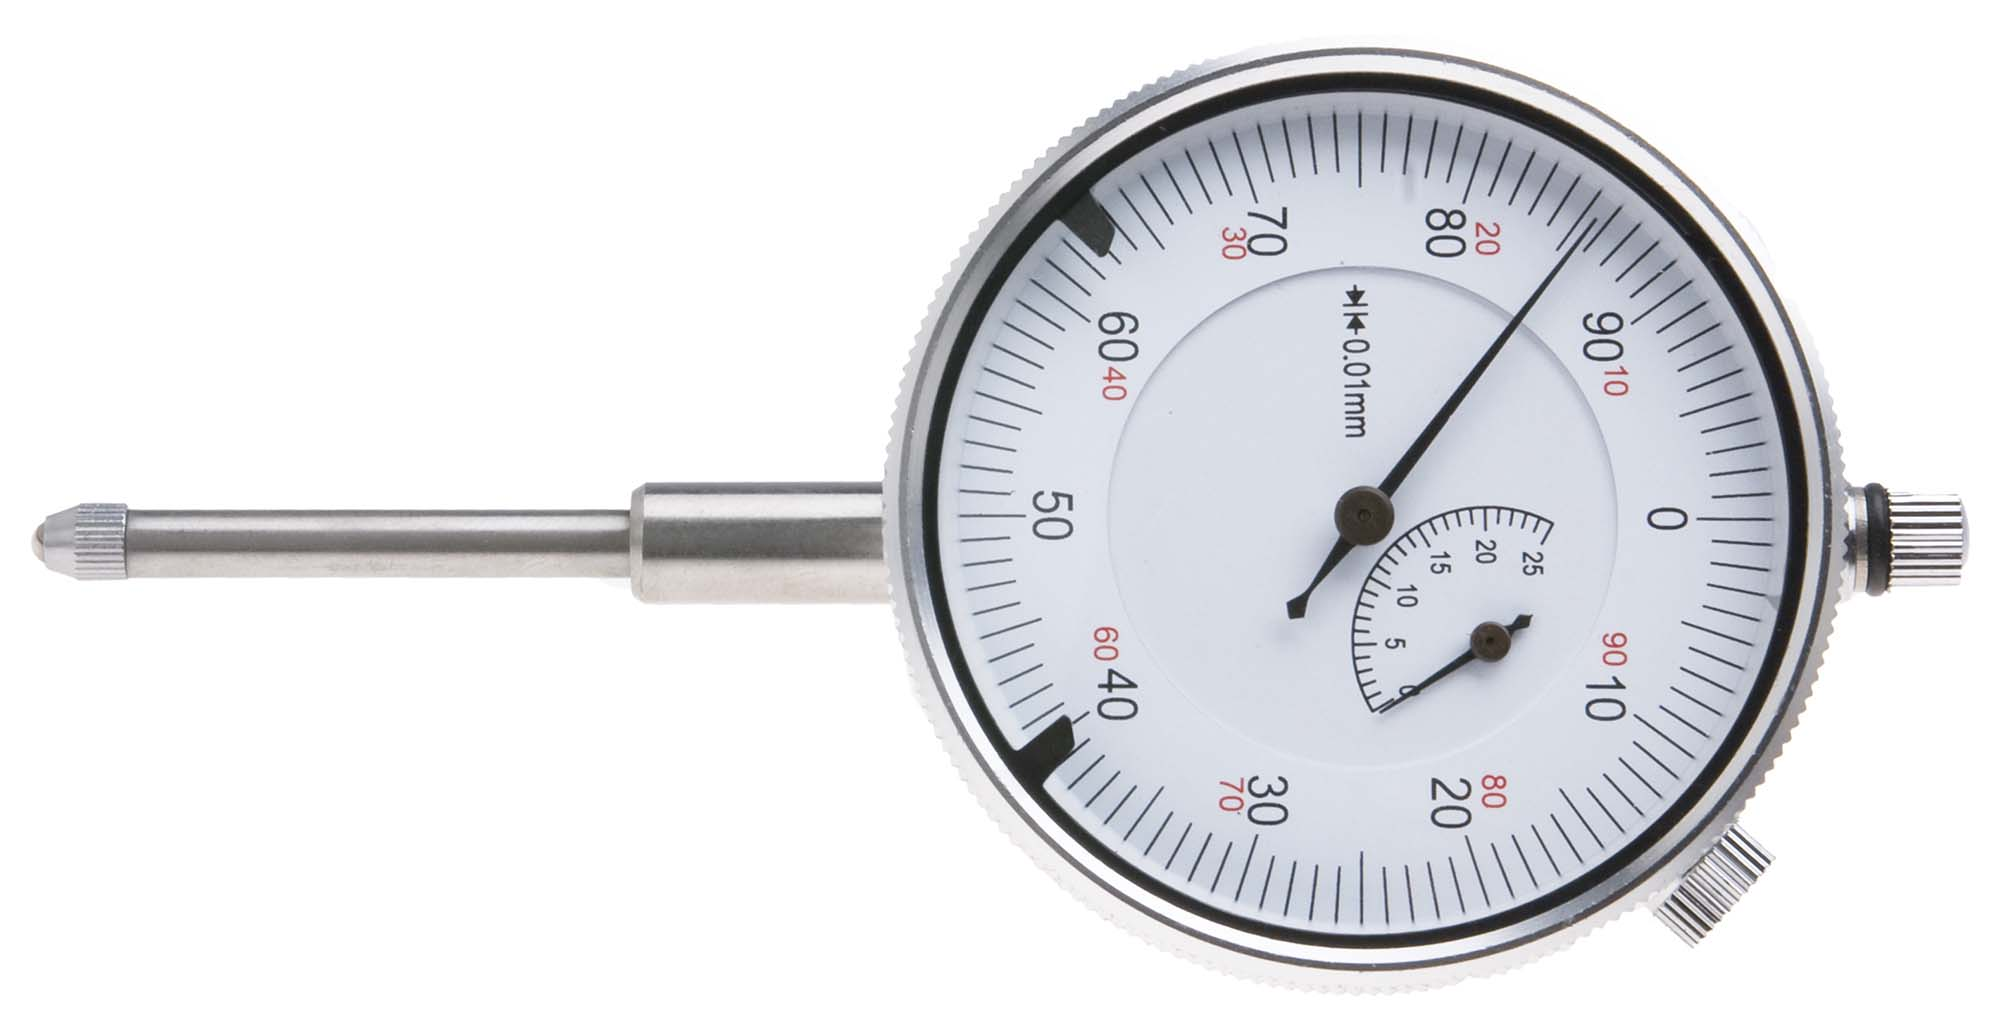 VDI-25M  25mm Dial Indicator, reads .01mm